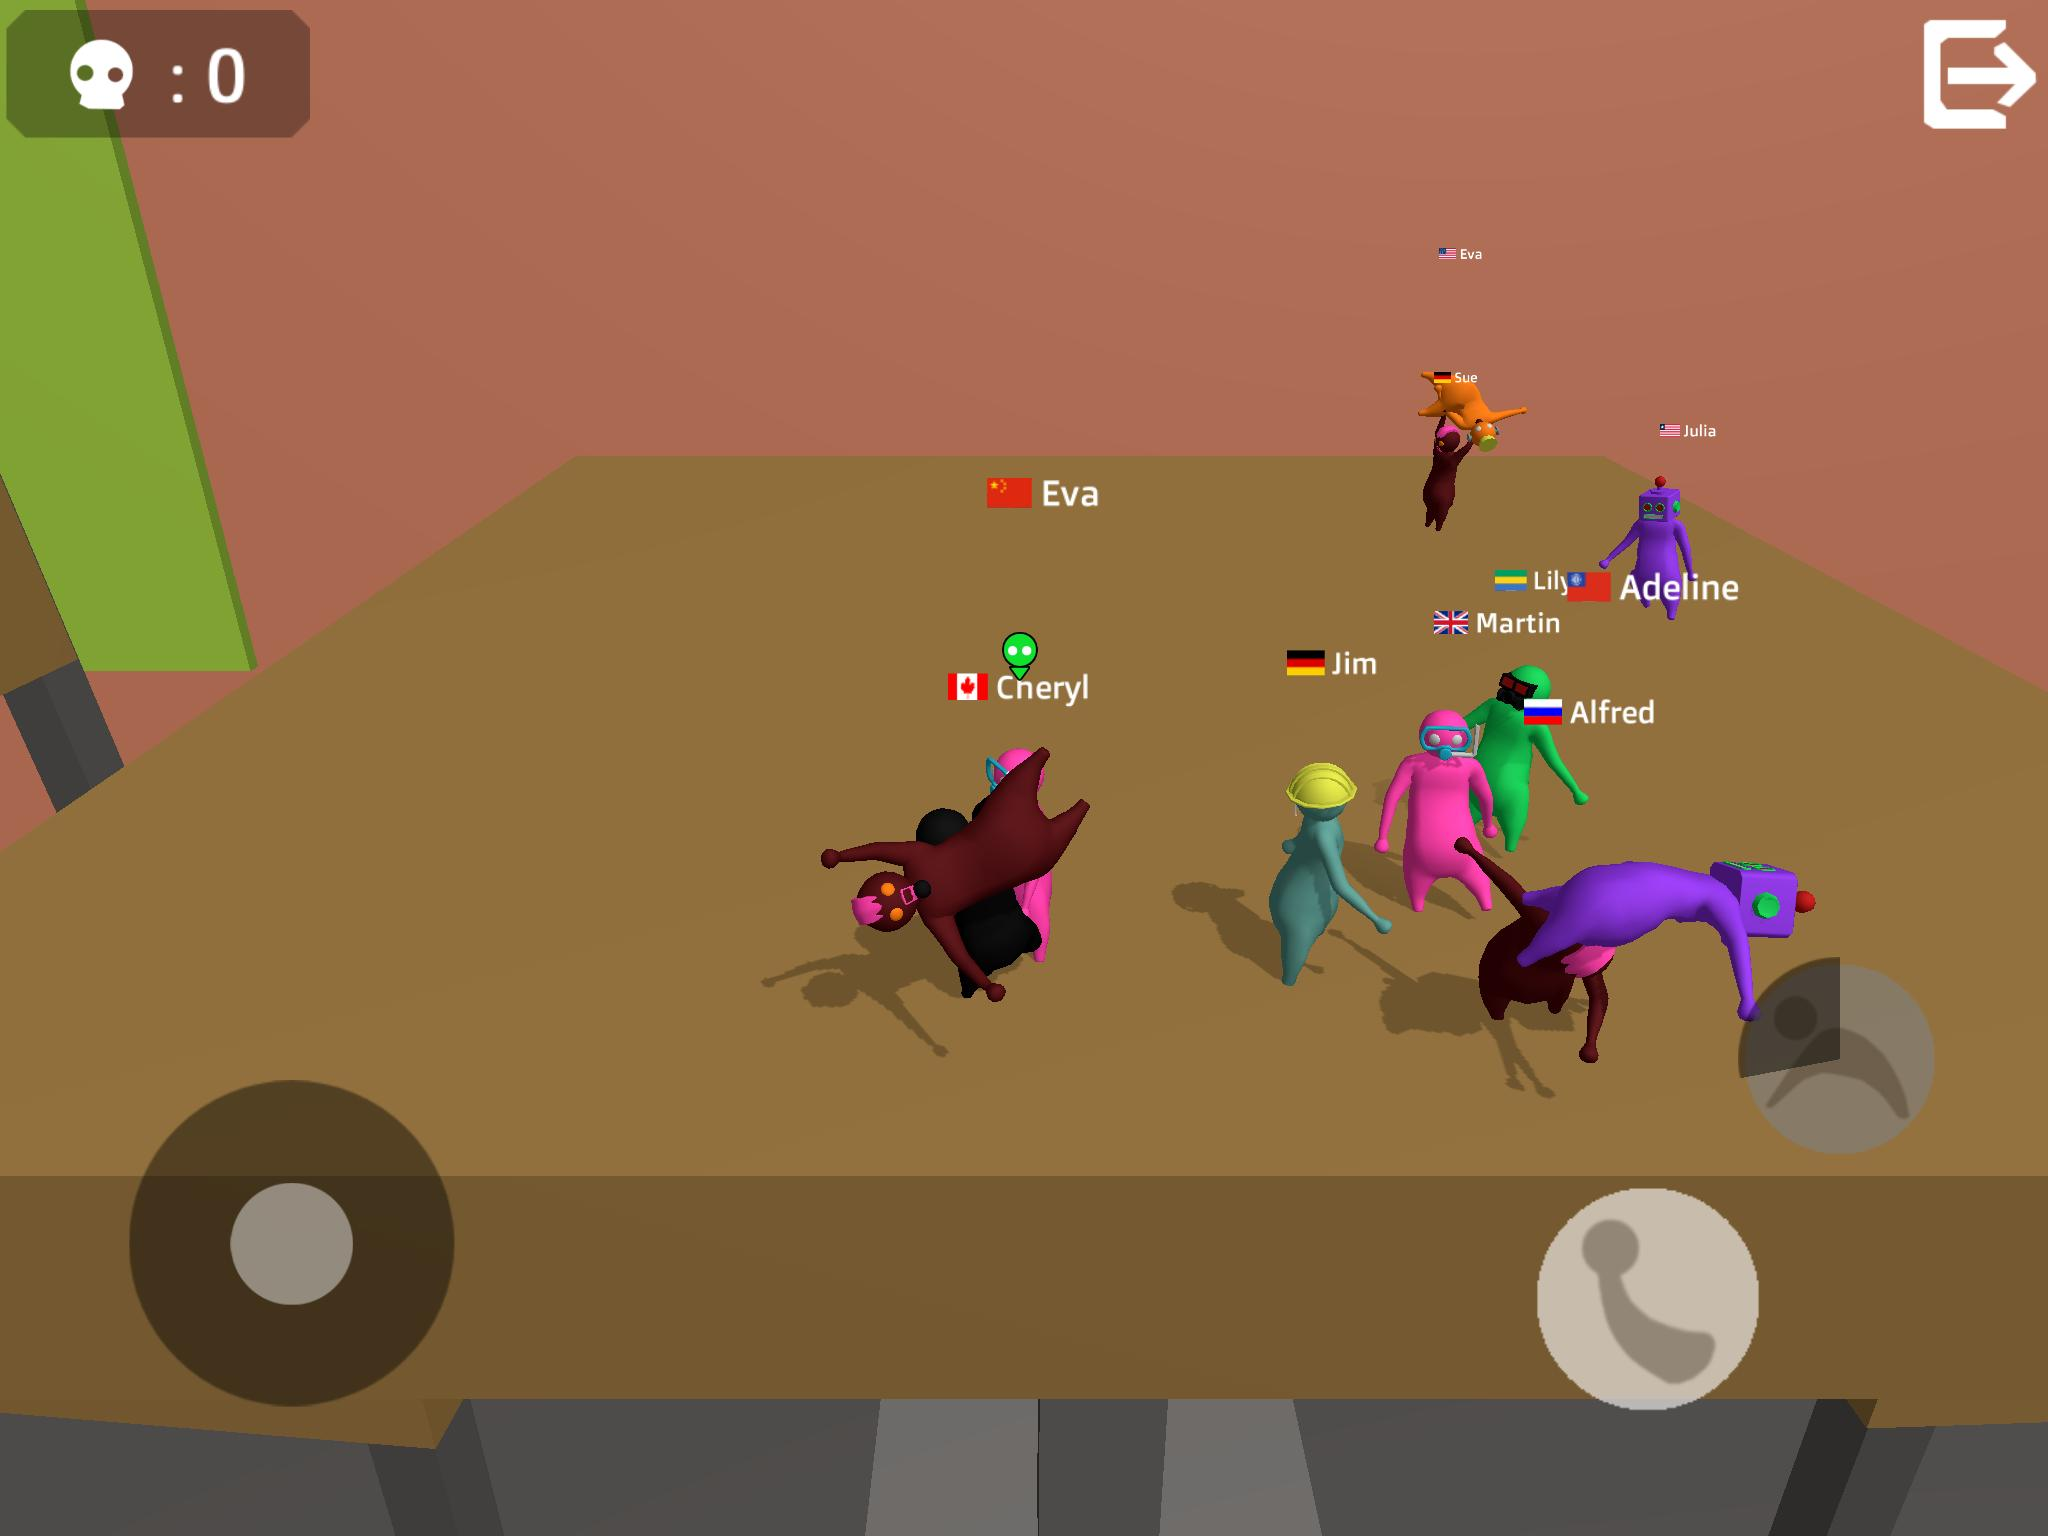 Noodleman.io - Fight Party Games 3.3 Screenshot 14